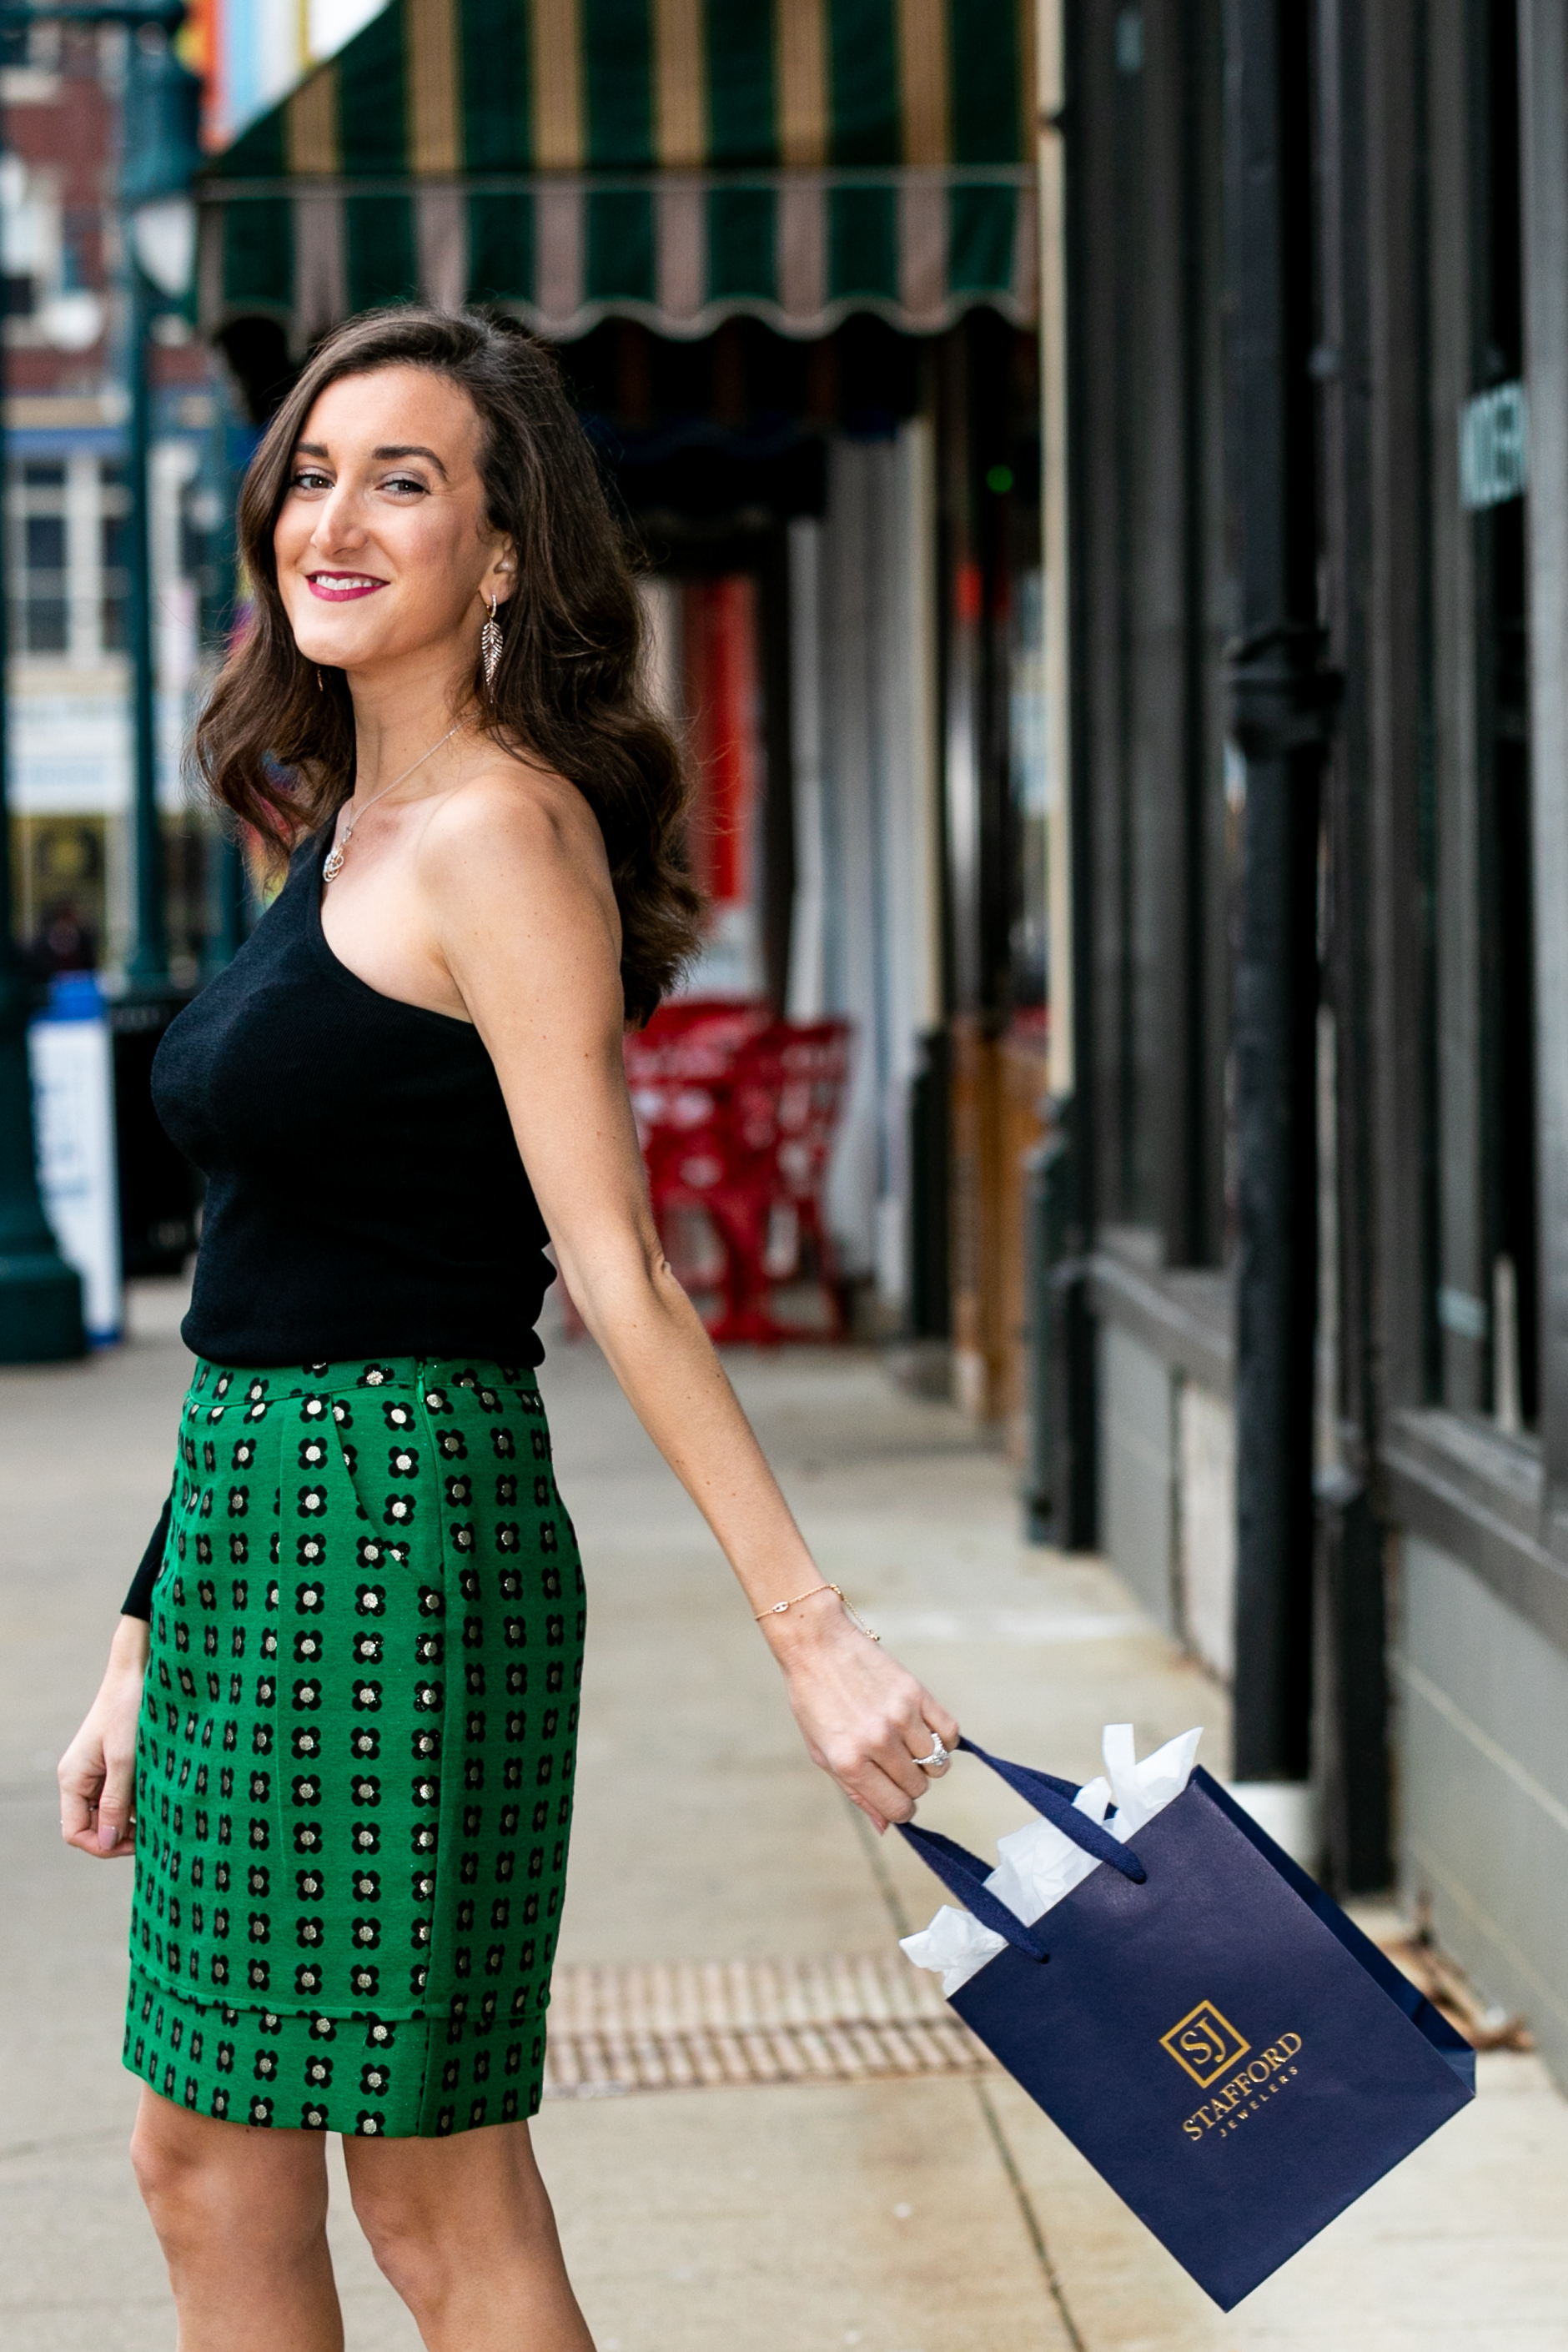 Stafford Jewelers with Cincinnati Fashion Blogger Olivia Johnson of Baubles to Bubbles